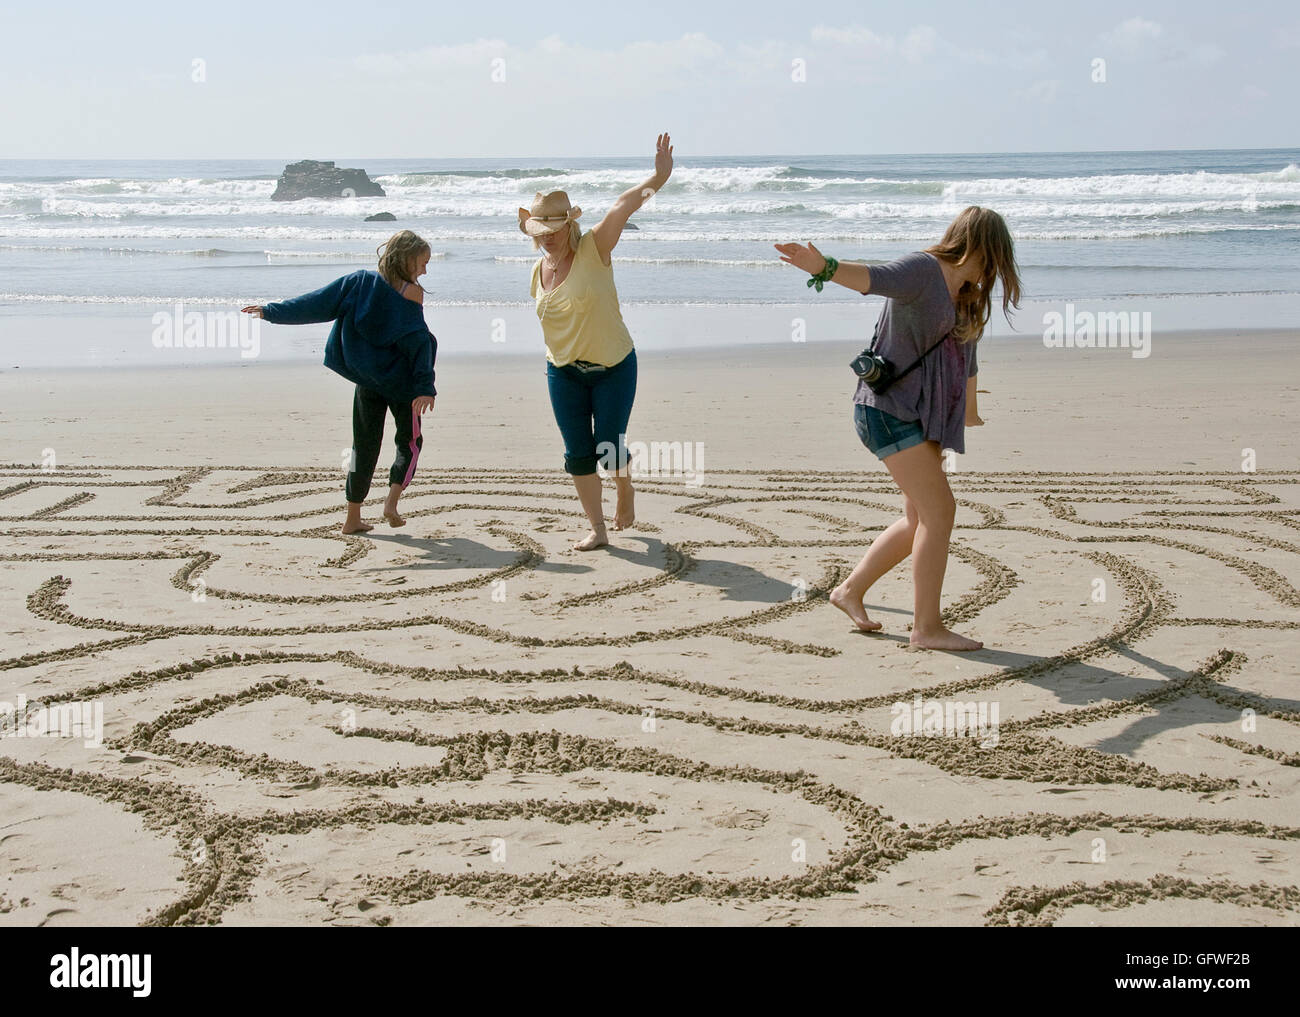 A woman and two girls going through a beach maze on an Oregon beach - Stock Image